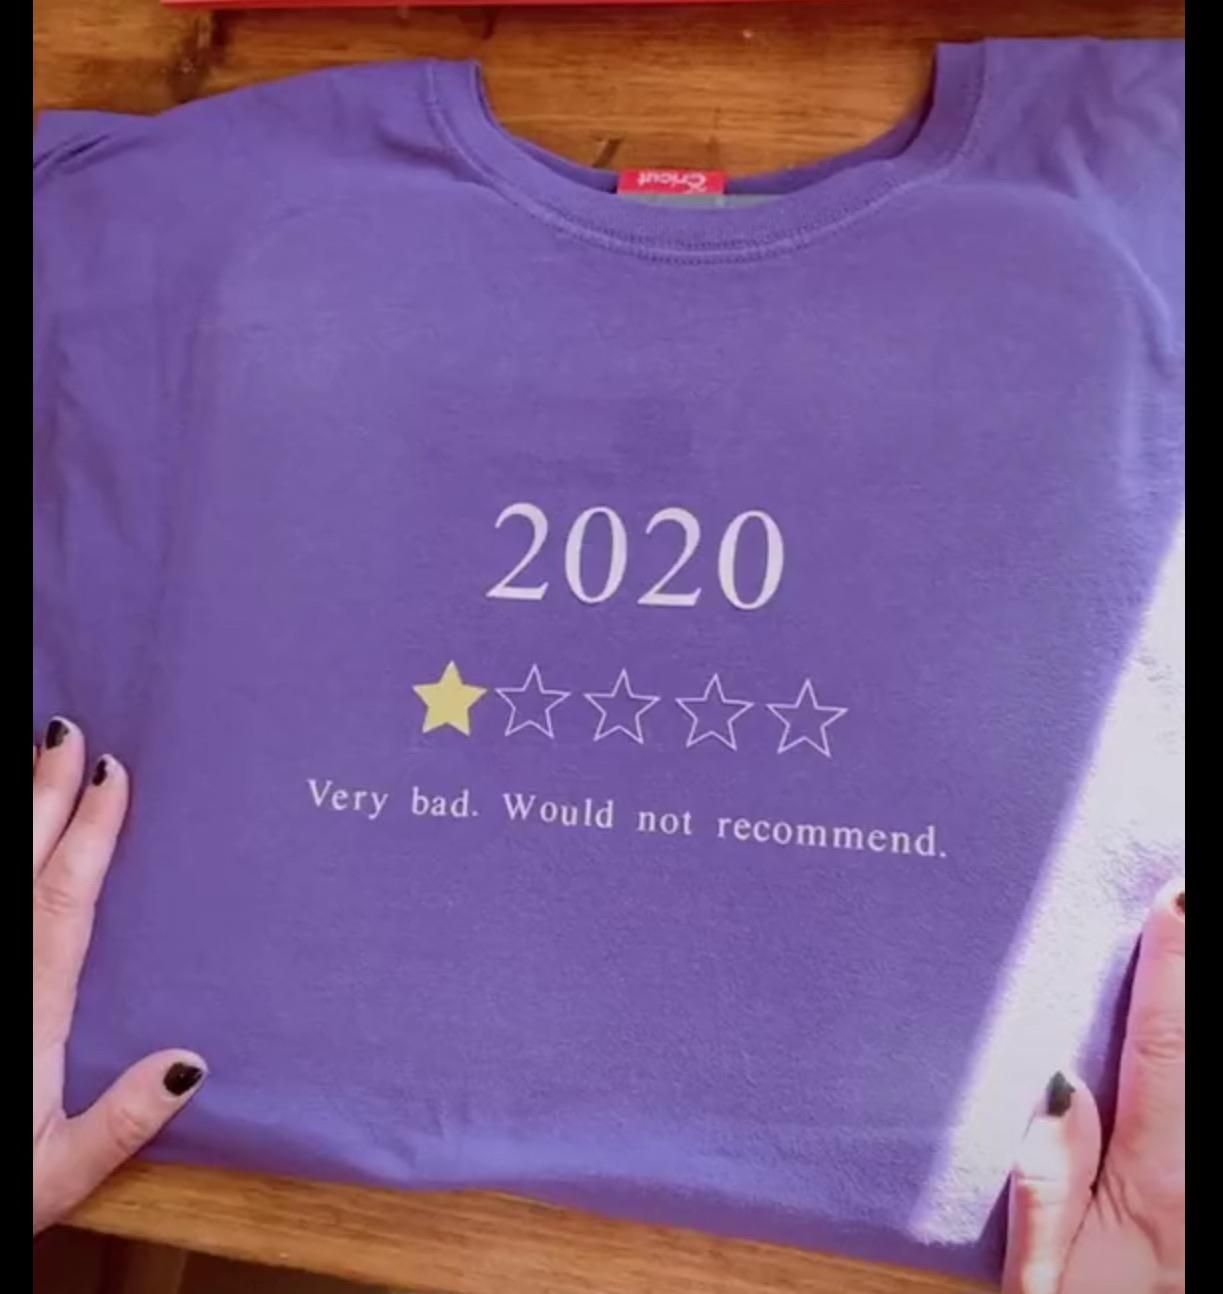 I do not recommend 2020 at all!